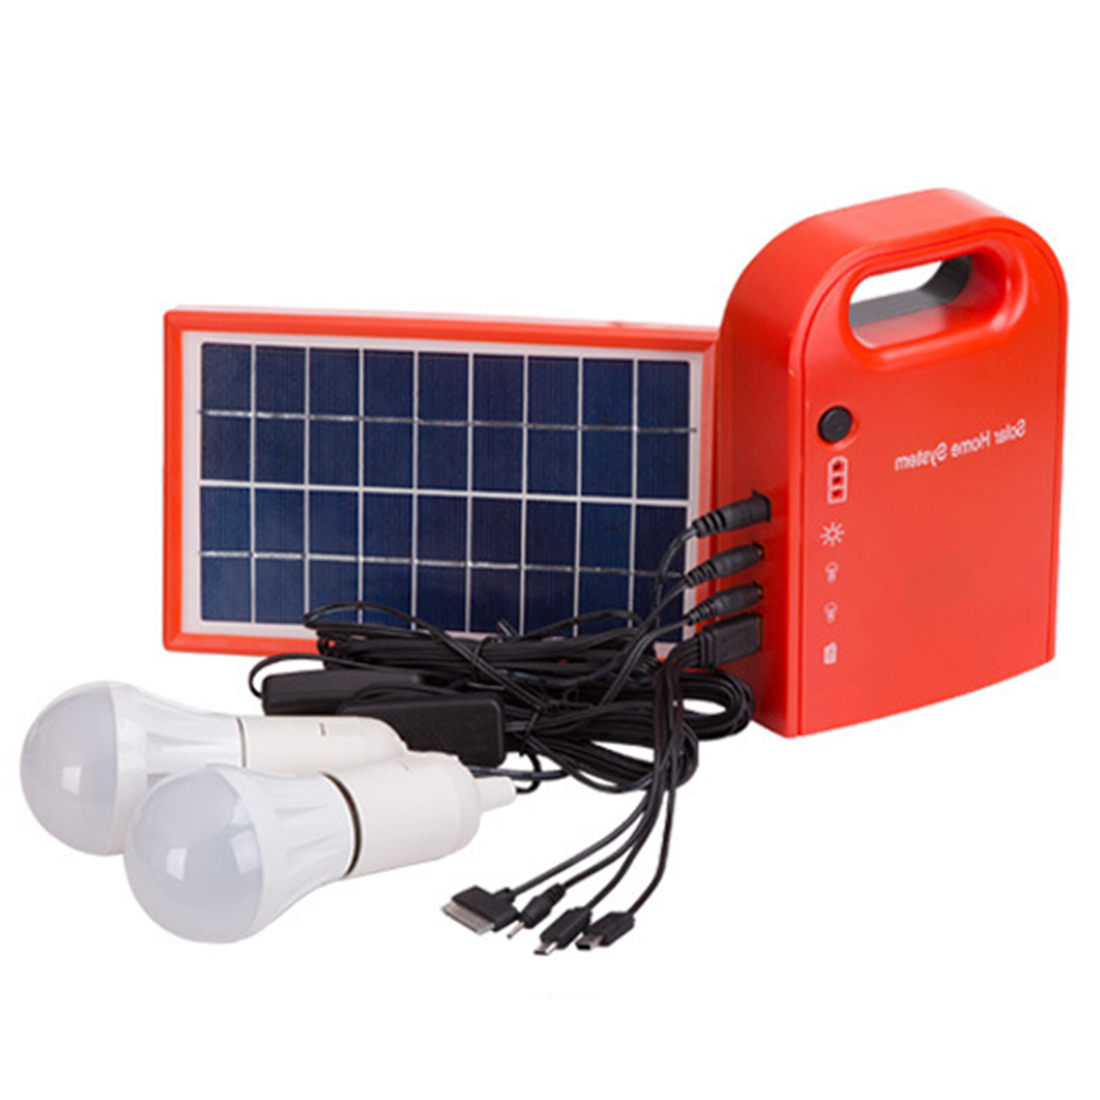 SOPATiO Household Power Photovoltaic Generator Solar Panel System Solar Lamp Battery Charger Cable Emergency Lighting System гарнитура akg y20u yellow